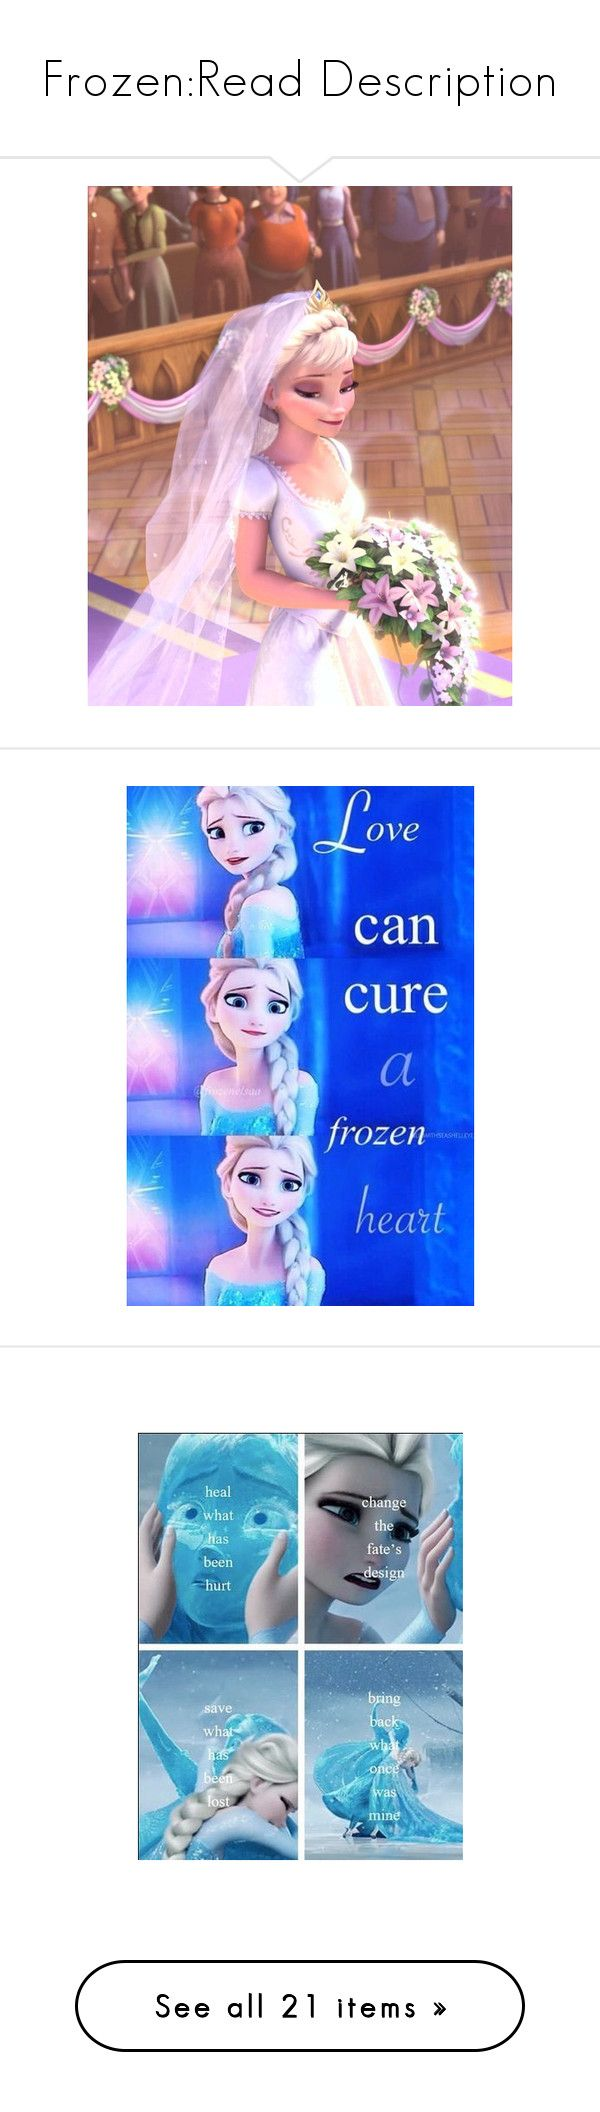 """""""Frozen:Read Description"""" by zmommyandme ❤ liked on Polyvore featuring disney, elsa, frozen, backgrounds, pictures, words, anna, fillers, art and fandoms"""